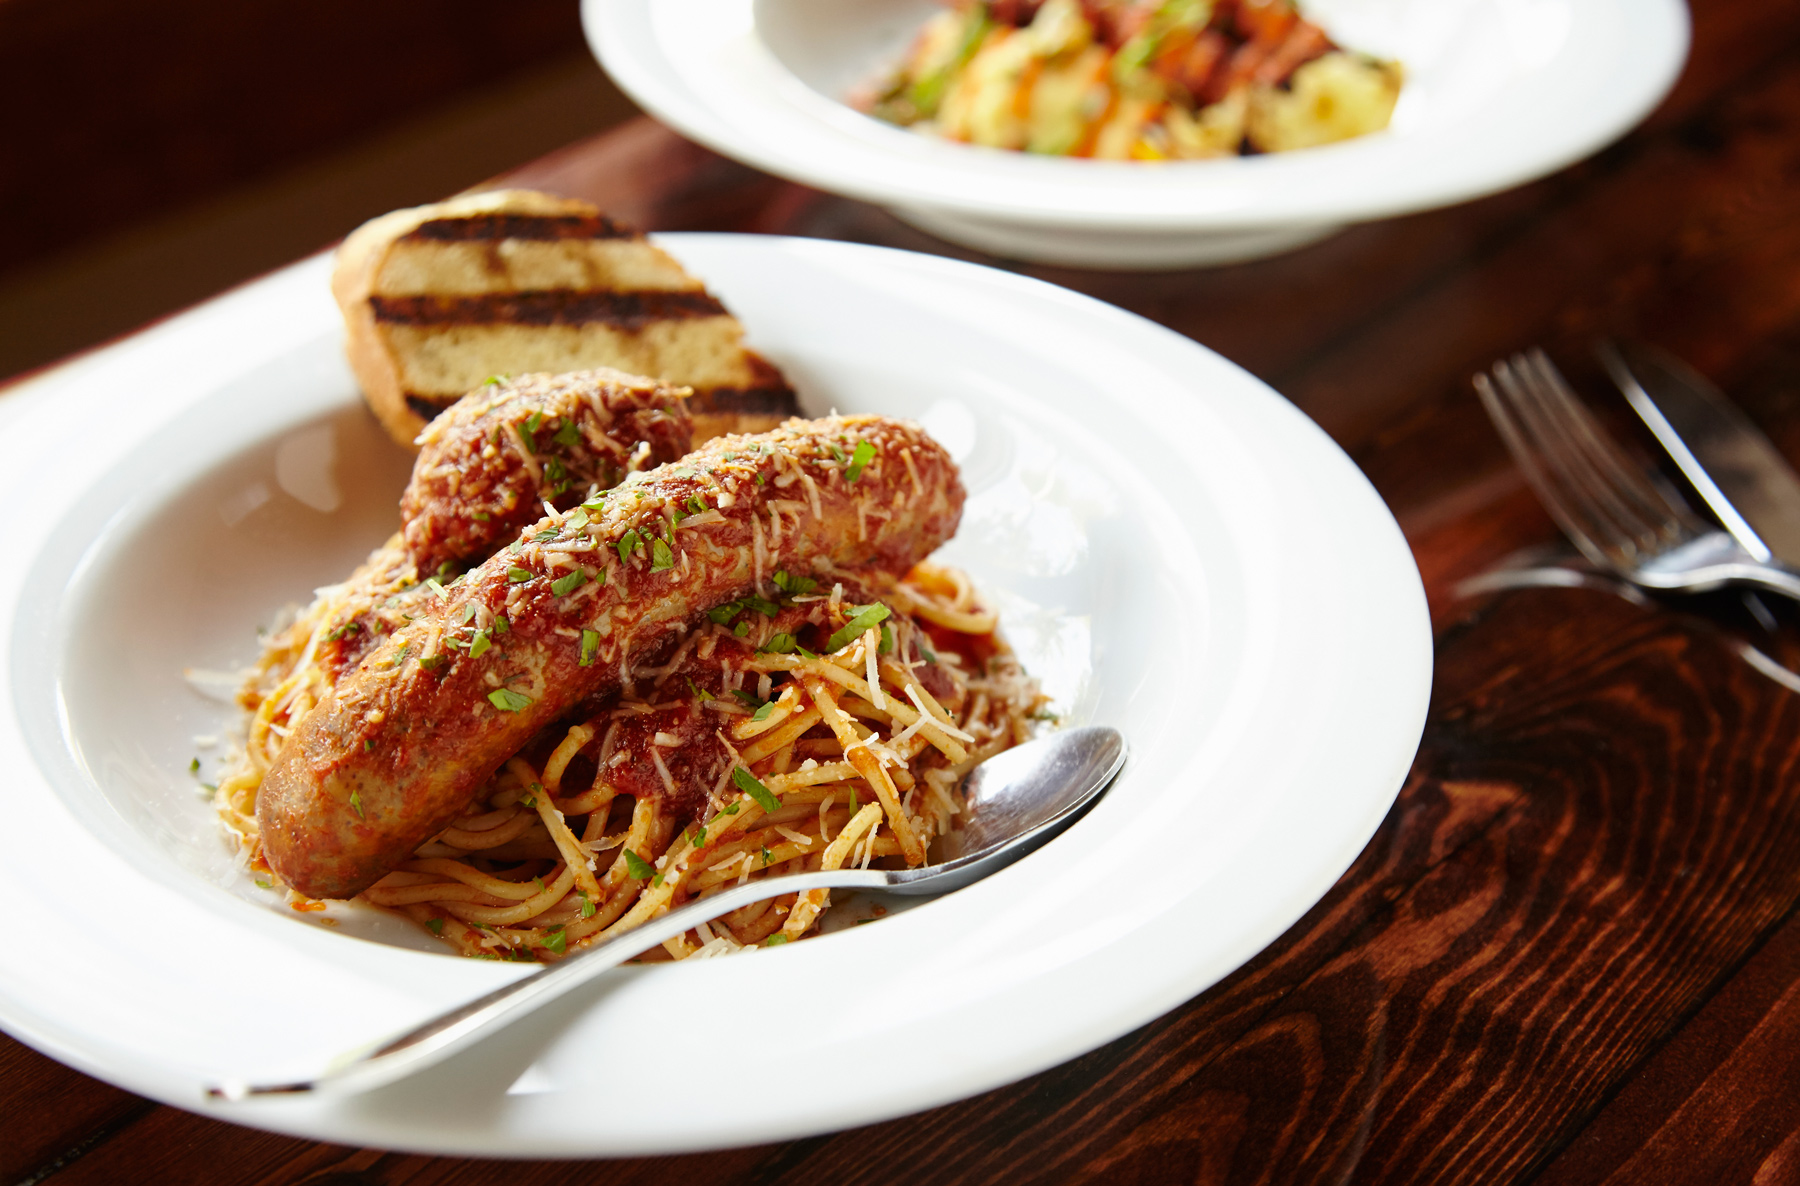 Italian Sausage and Meatball with Spaghetti photo by Chris Kessler Photography.  Chris Kessler is a freelance Photographer based in Milwaukee Wisconsin. Specializing in Food photography and portraiture.